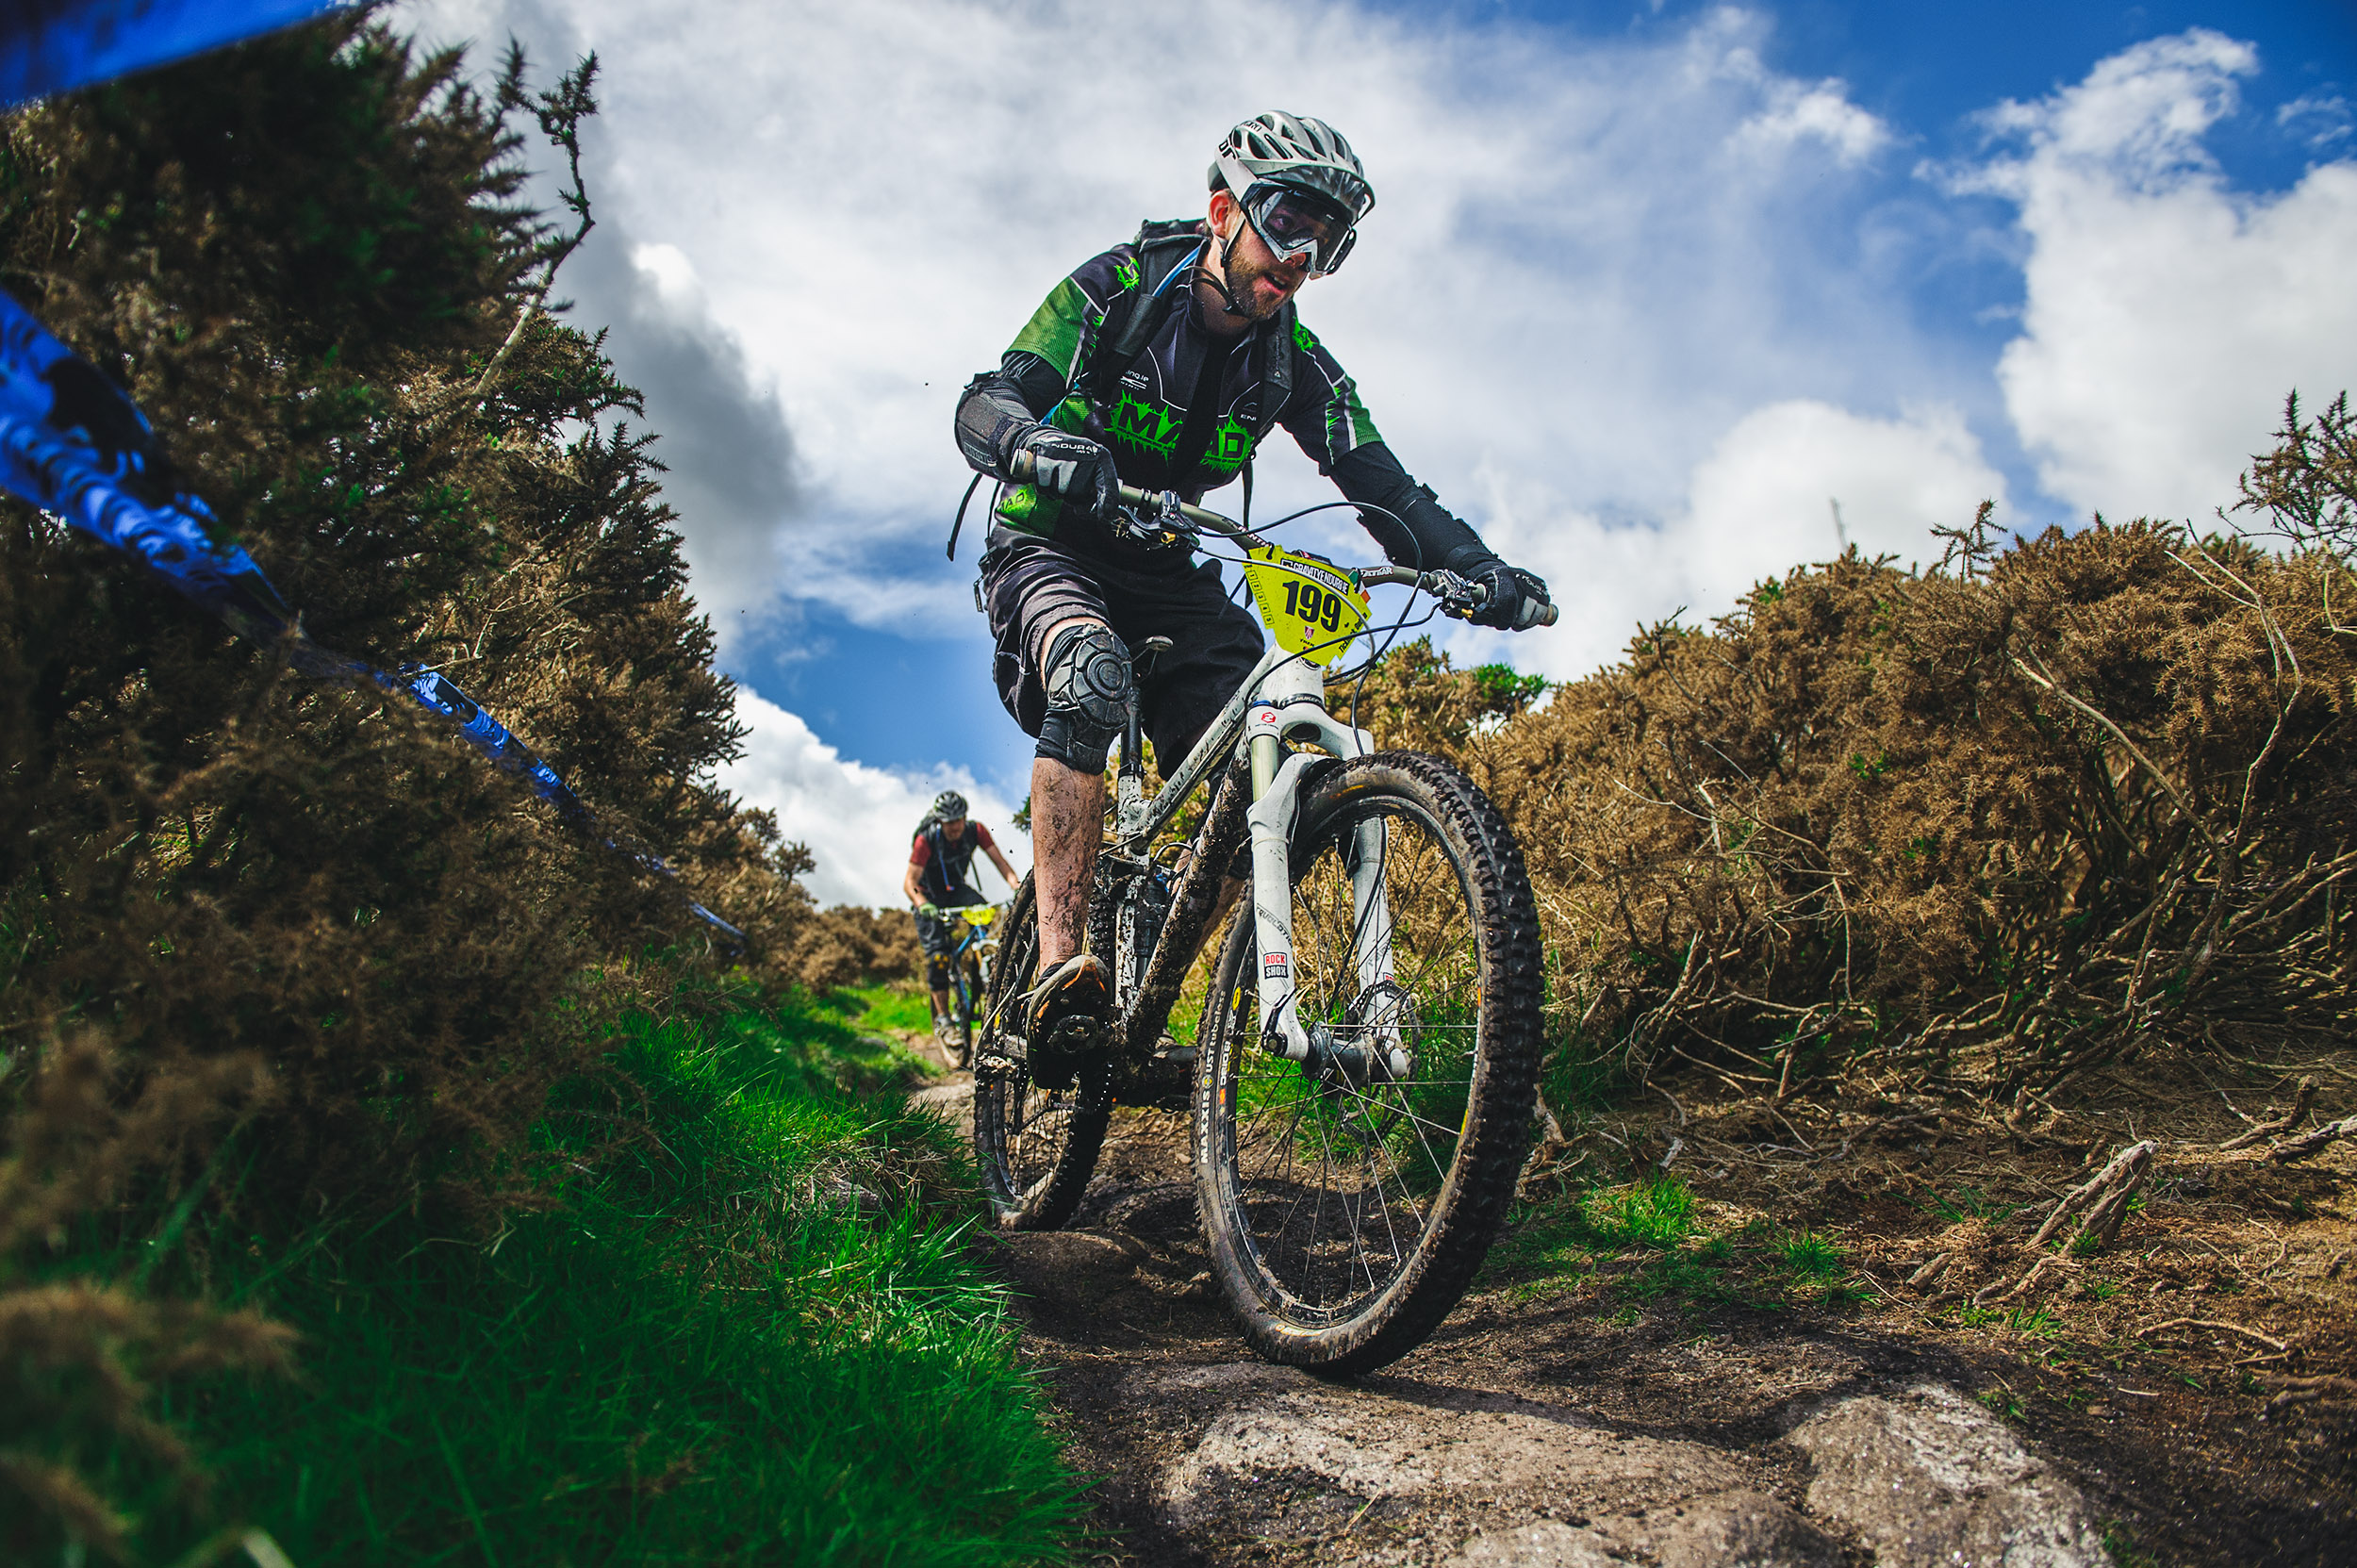 25-outdoor-ireland-mountains-wicklow-mountain-biking-MTB.jpg